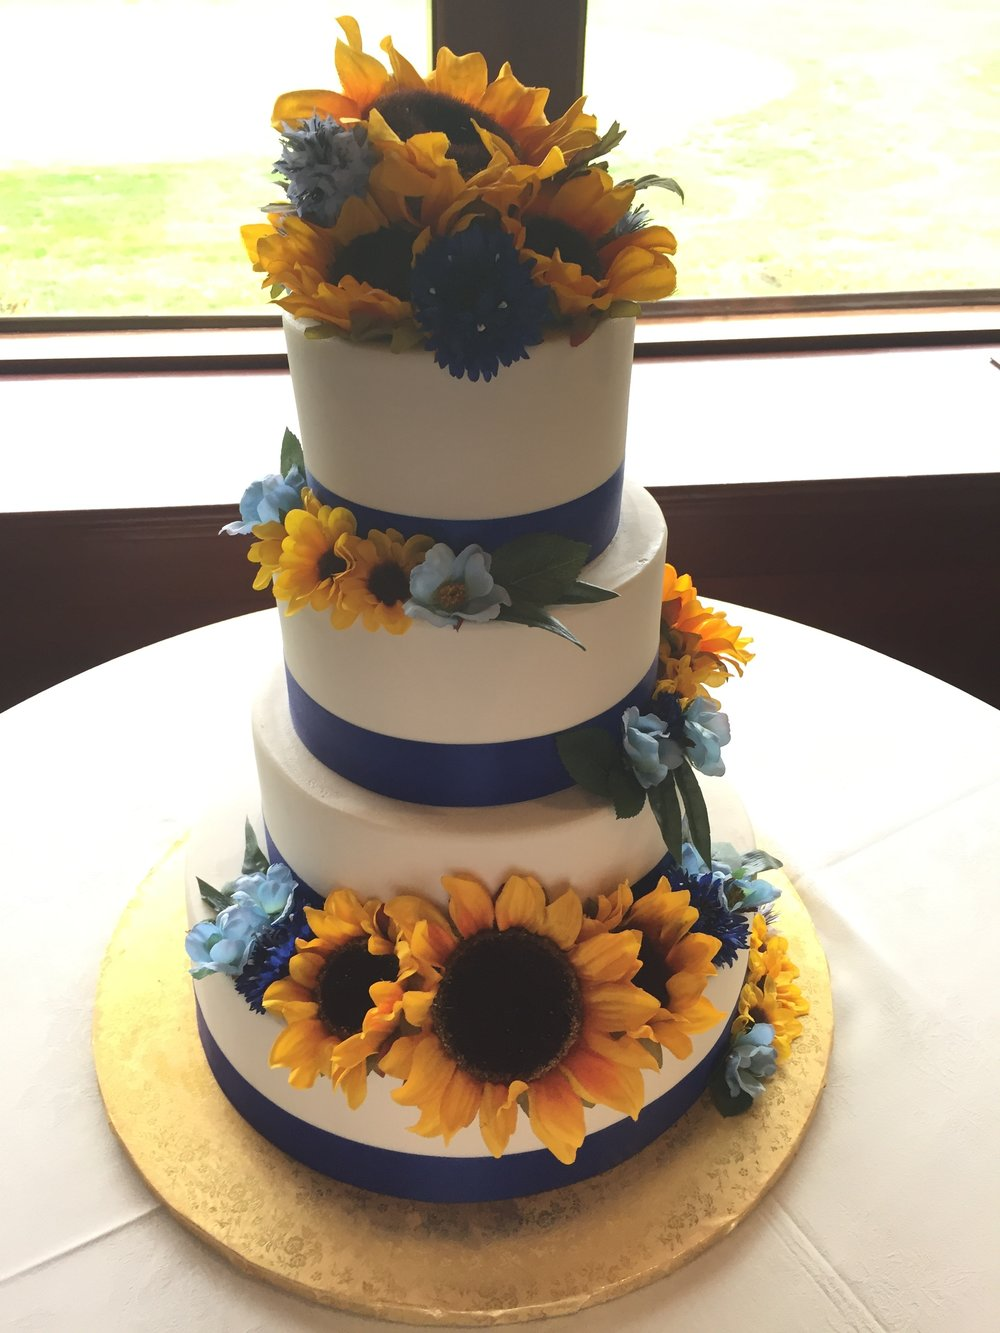 Blue Ribbon with Sunflowers Wedding Cake